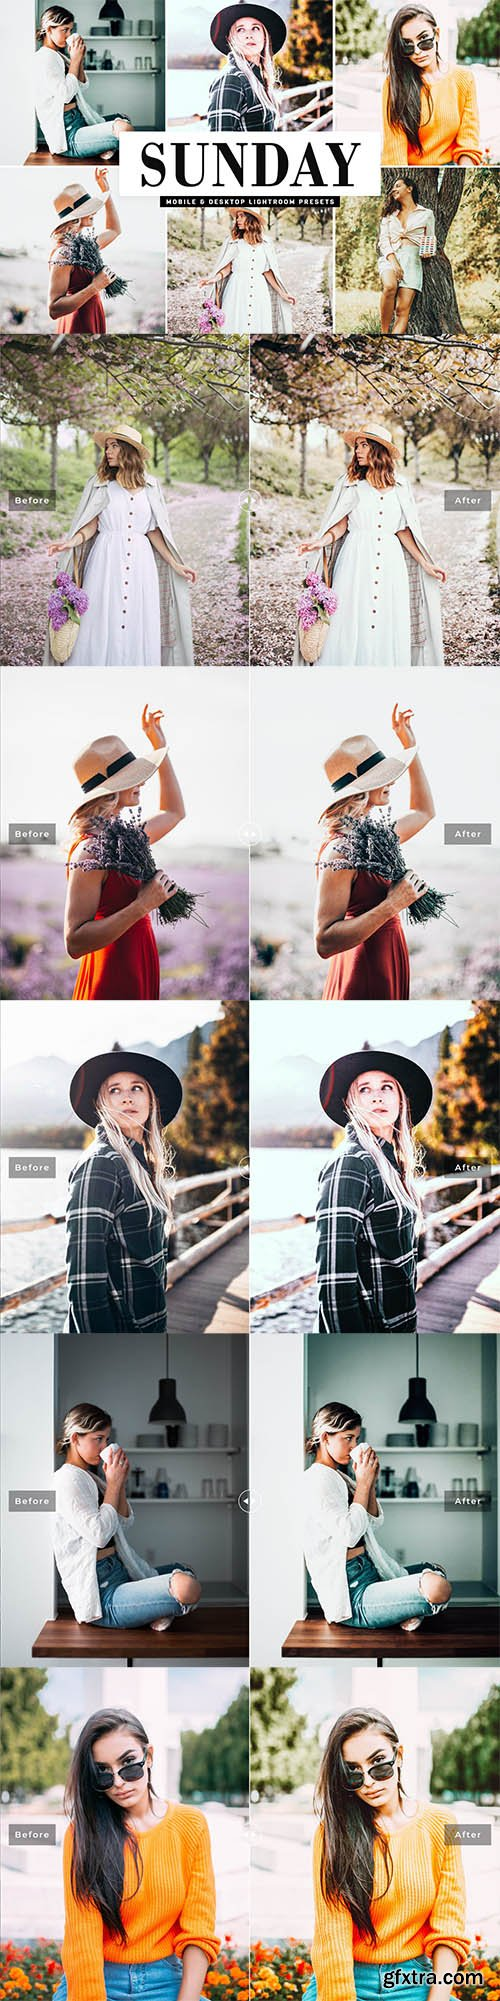 Sunday Mobile & Desktop Lightroom Presets